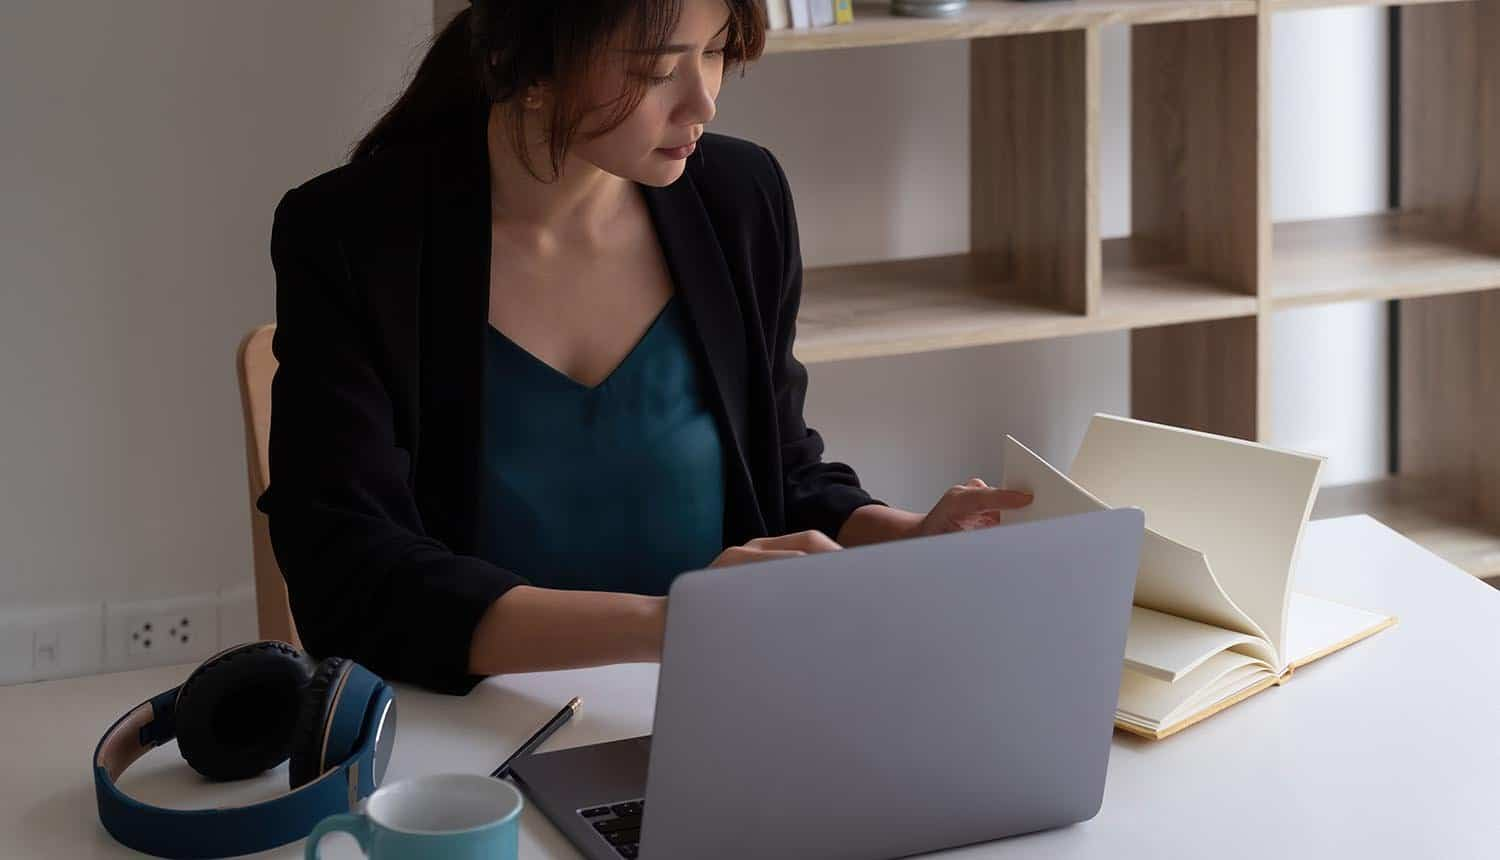 Woman using laptop for remote working showing employee behaviors in hybrid workplace